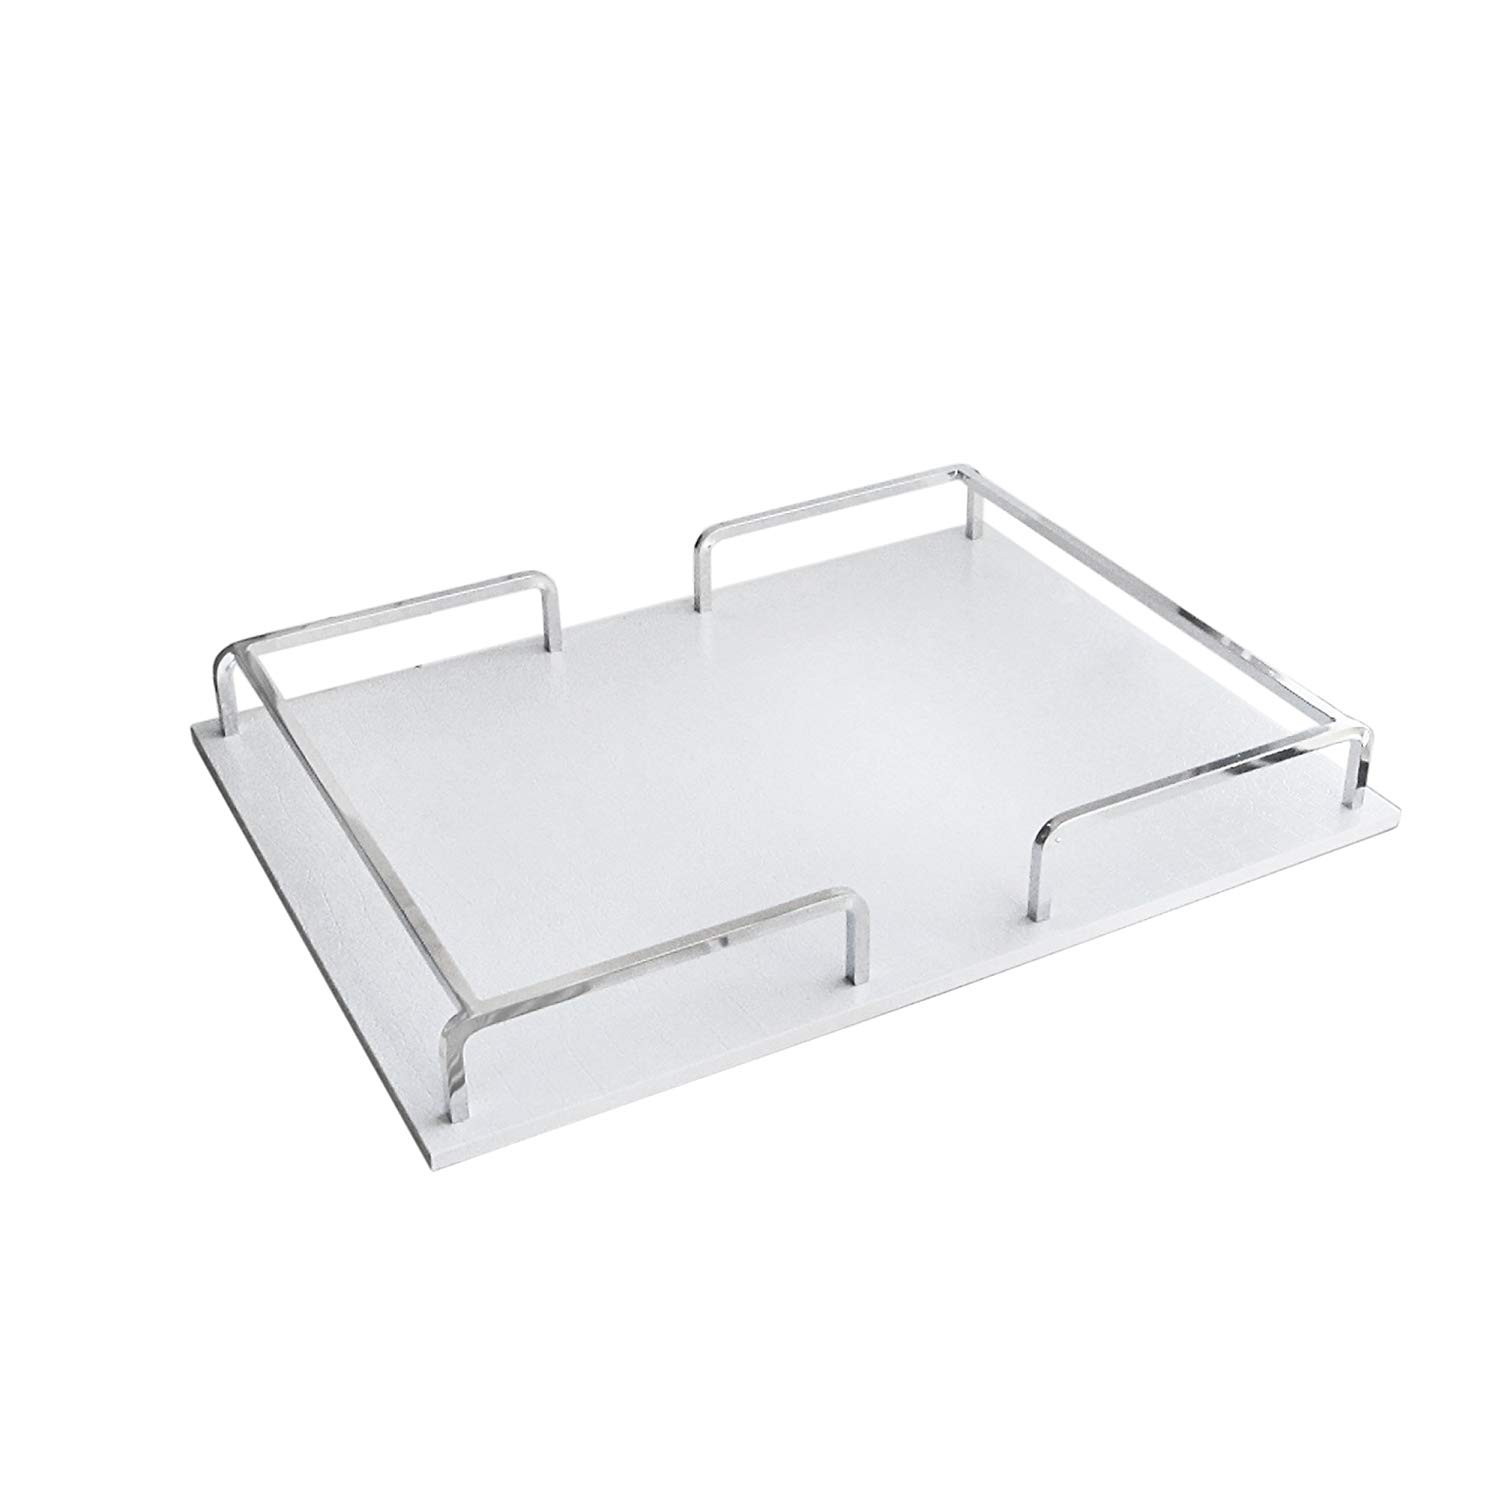 American Atelier Croc Rectangle Rail Tray, White/Silver